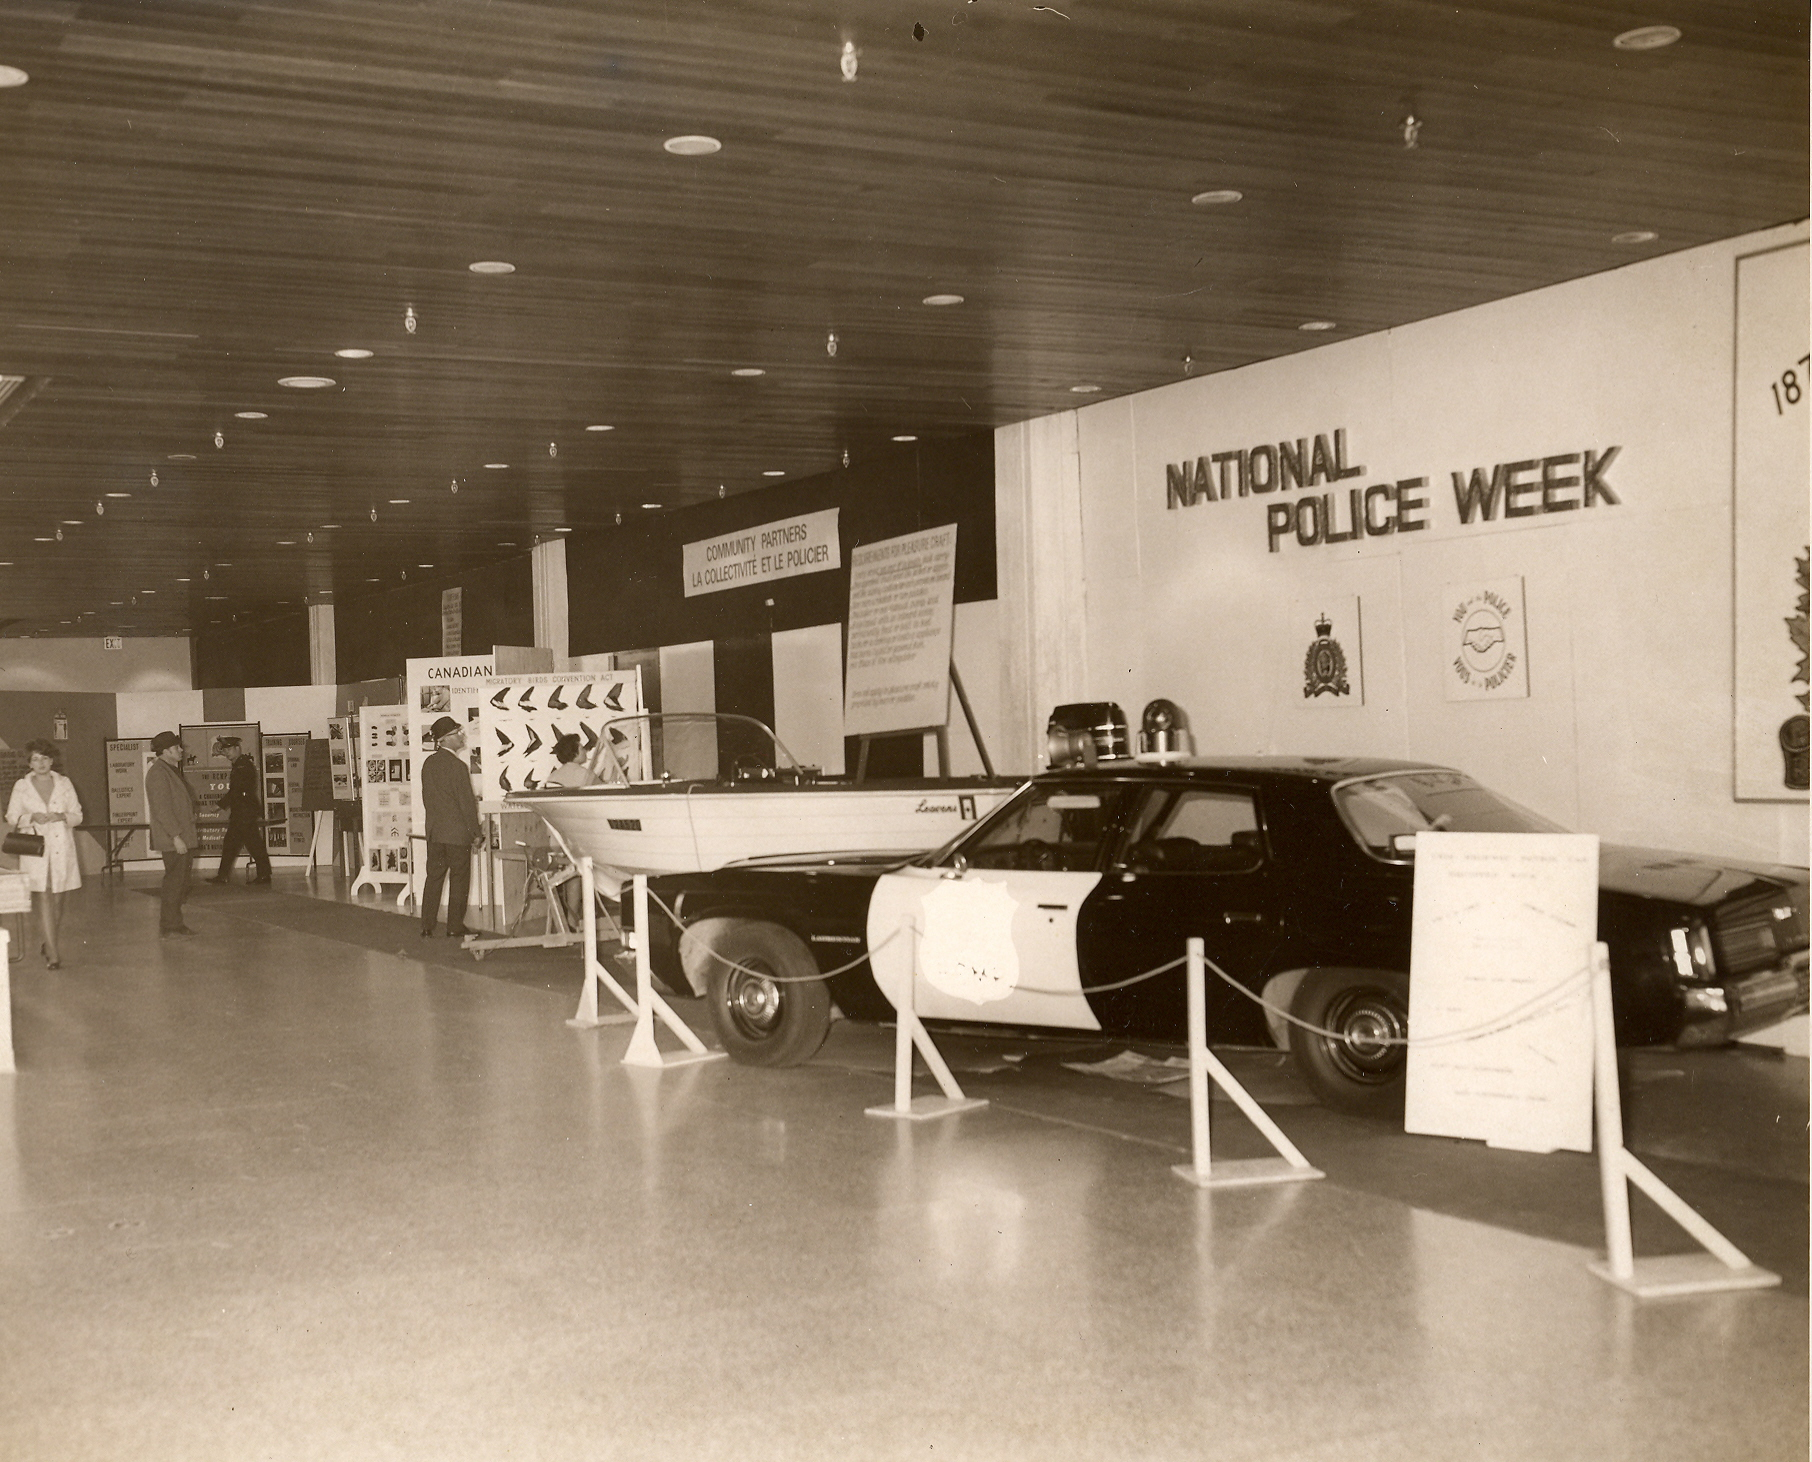 Black and white photo of a cruiser on display under a National Police Week banner